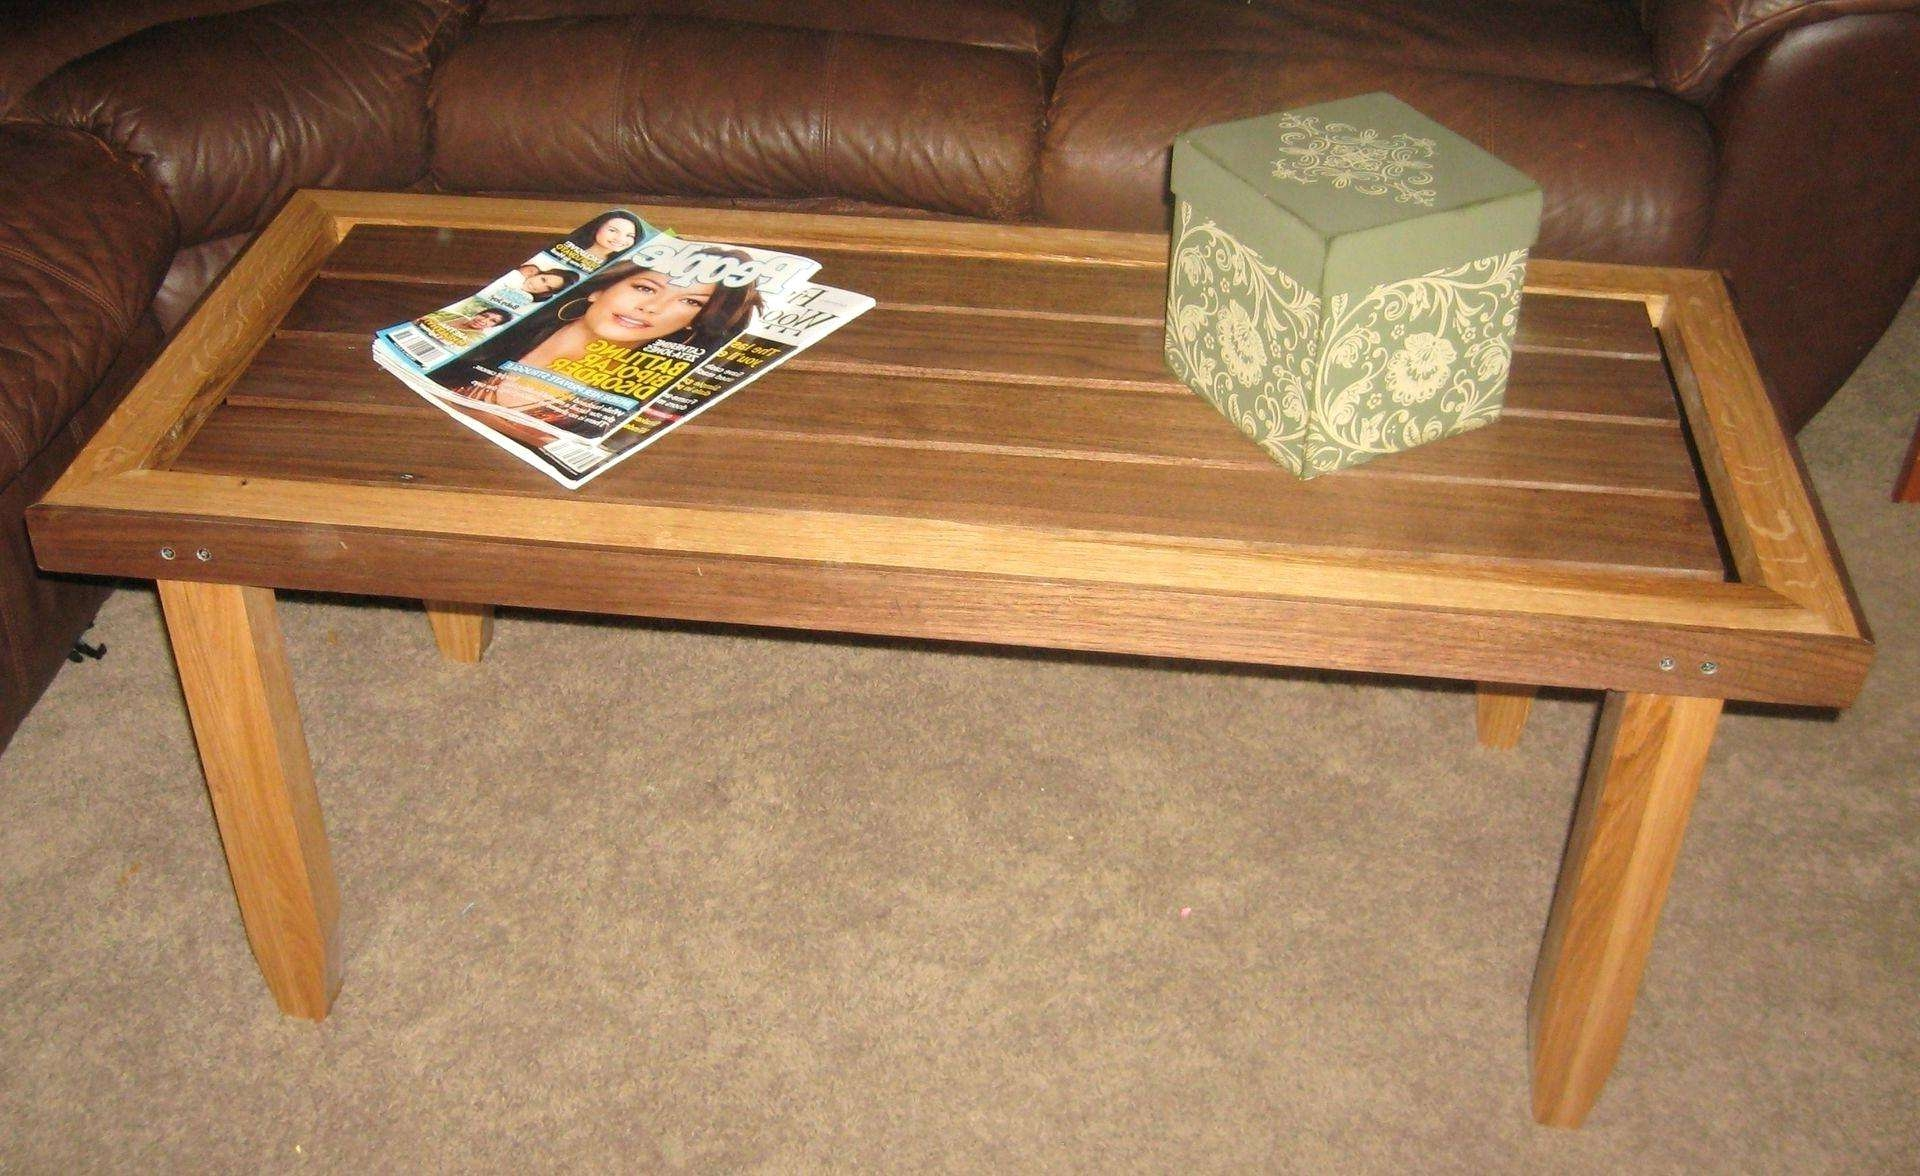 Coffee Tables : Floating Glass Top Coffee Table Balloon With Best And Newest Floating Glass Coffee Tables (Gallery 8 of 20)